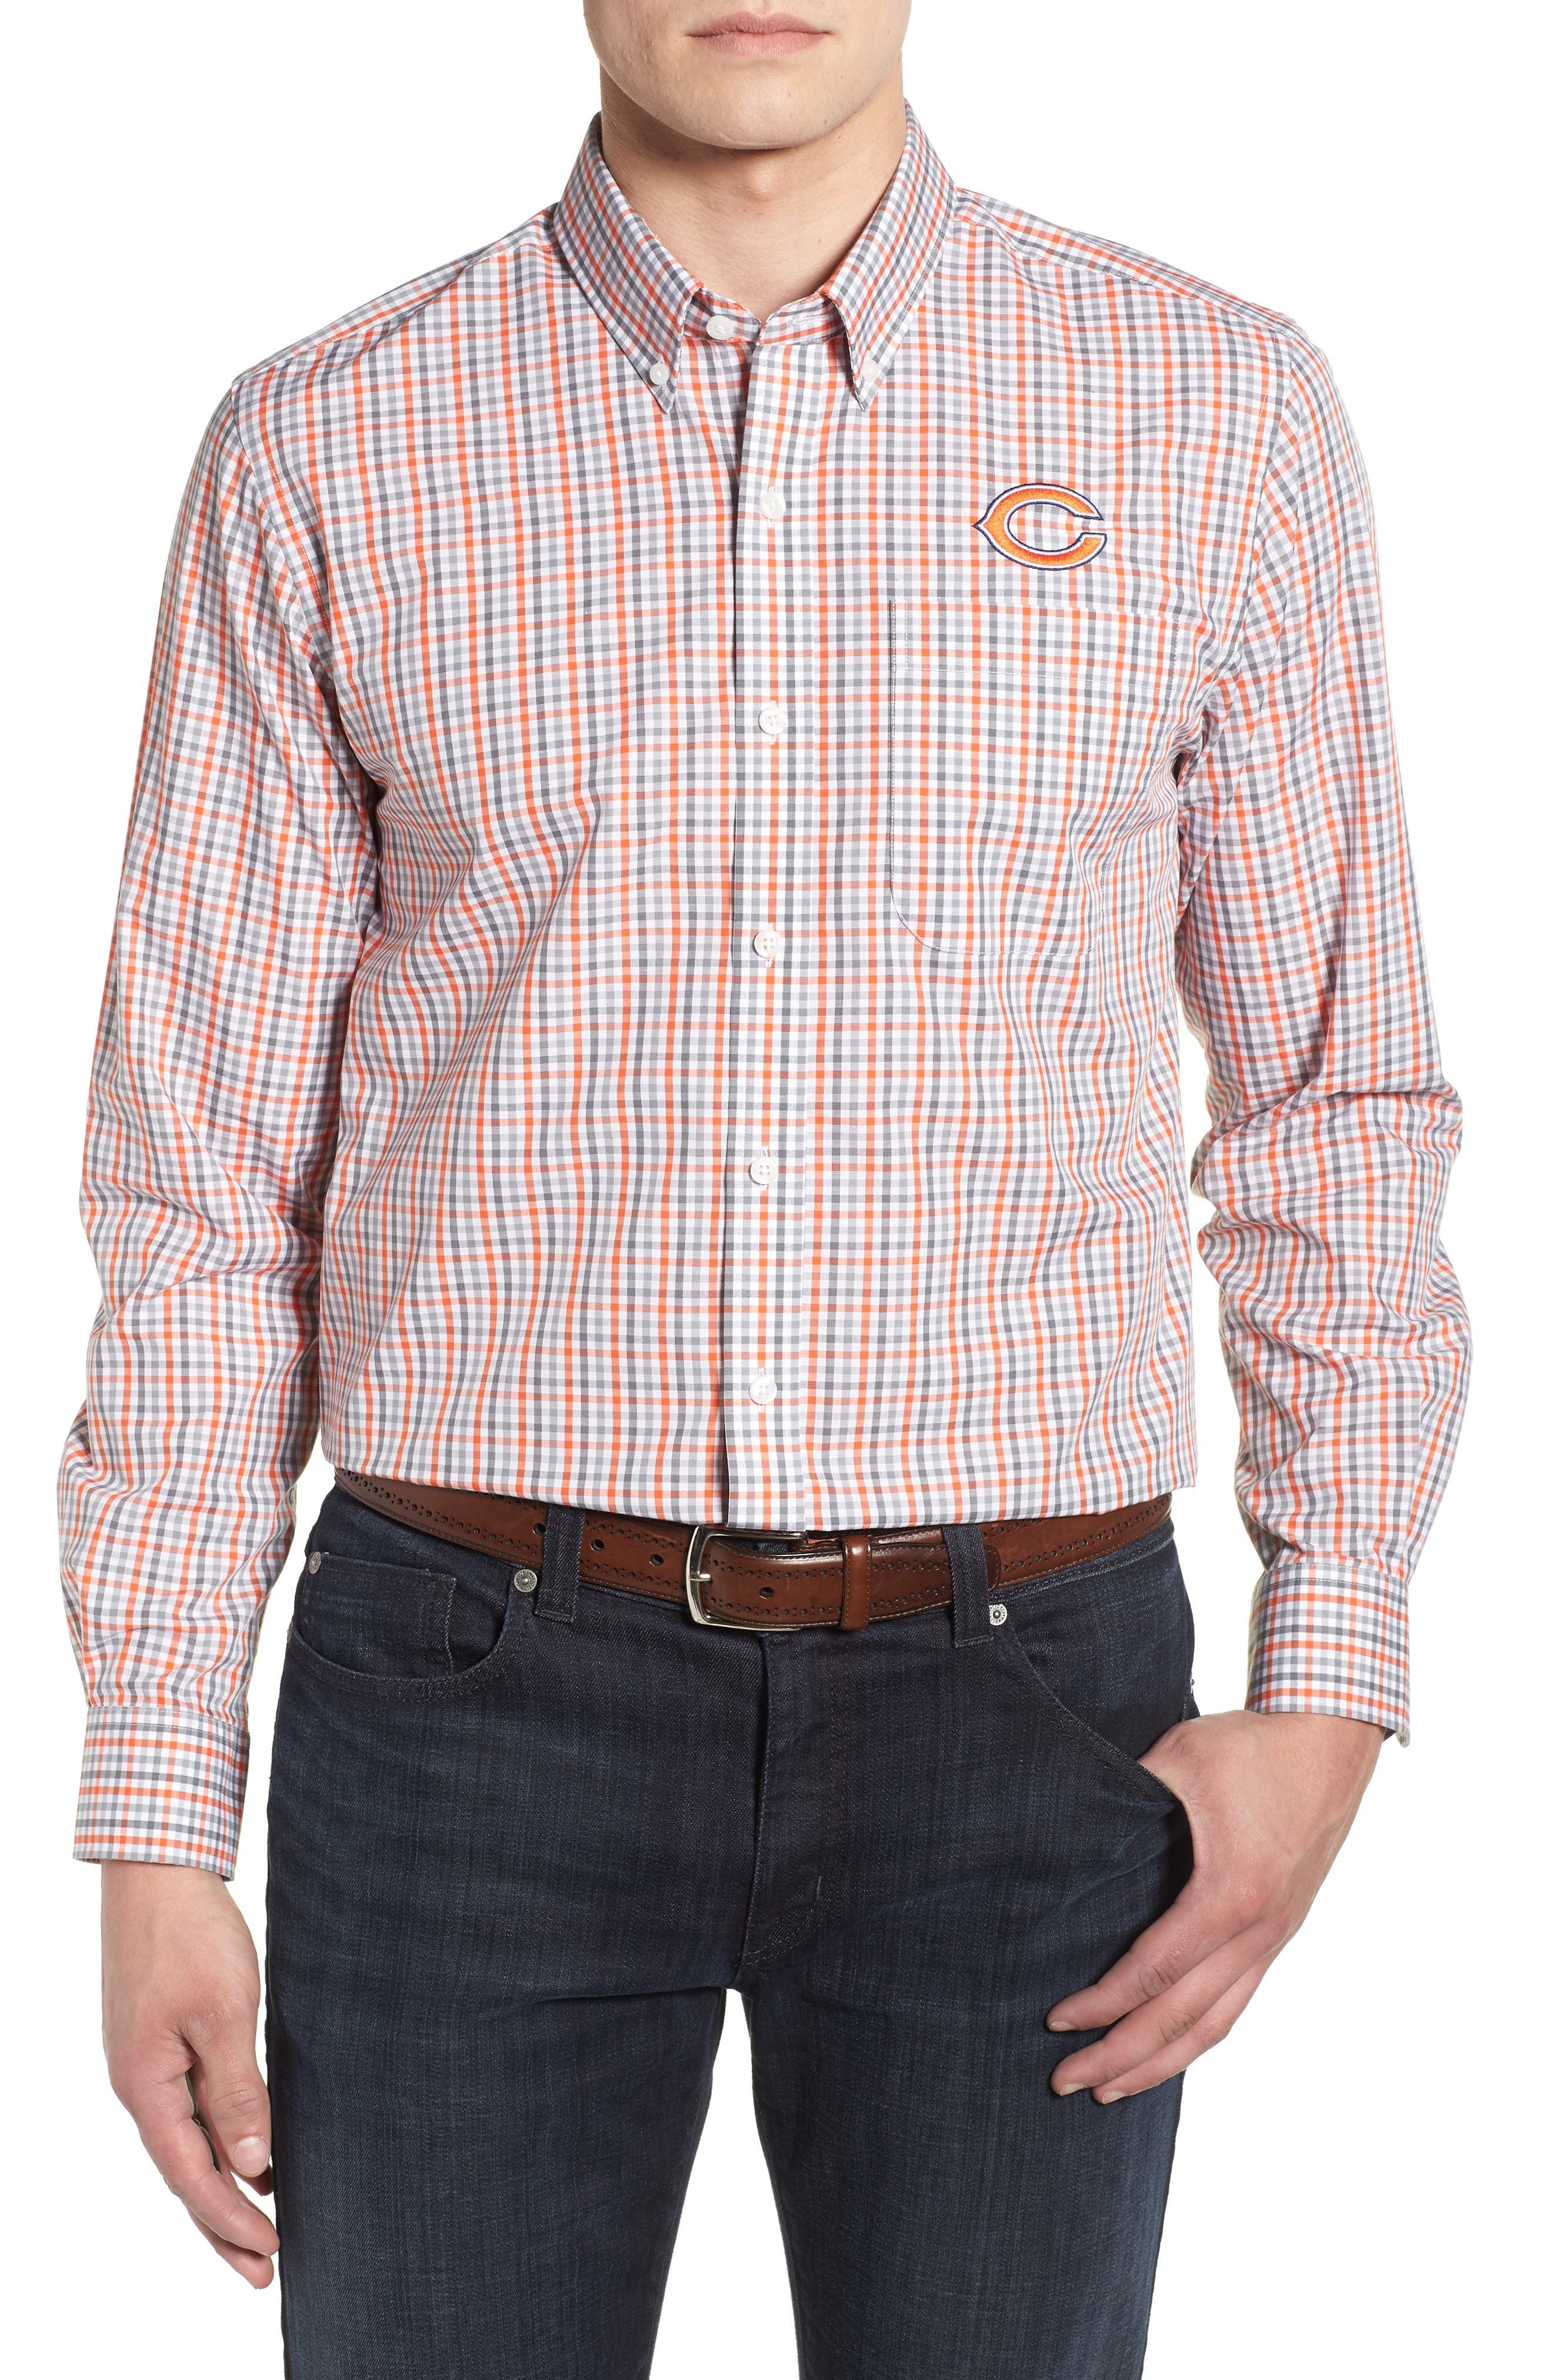 Chicago Bears - Gilman Regular Fit Plaid Sport Shirt,                             Main thumbnail 1, color,                             COLLEGE ORANGE